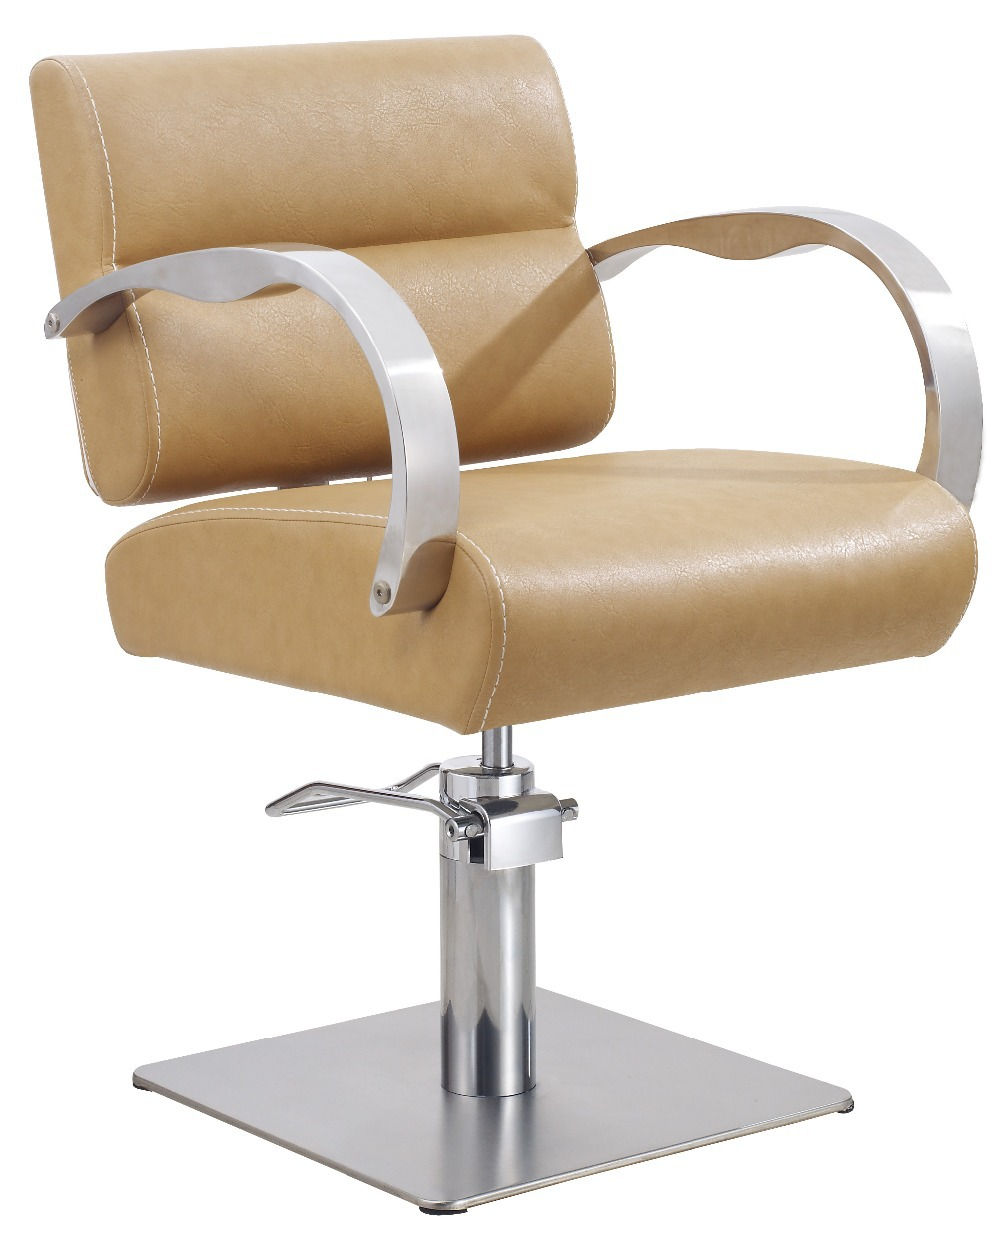 used hair styling chairs sale used hair styling chairs sale suppliers and at alibabacom